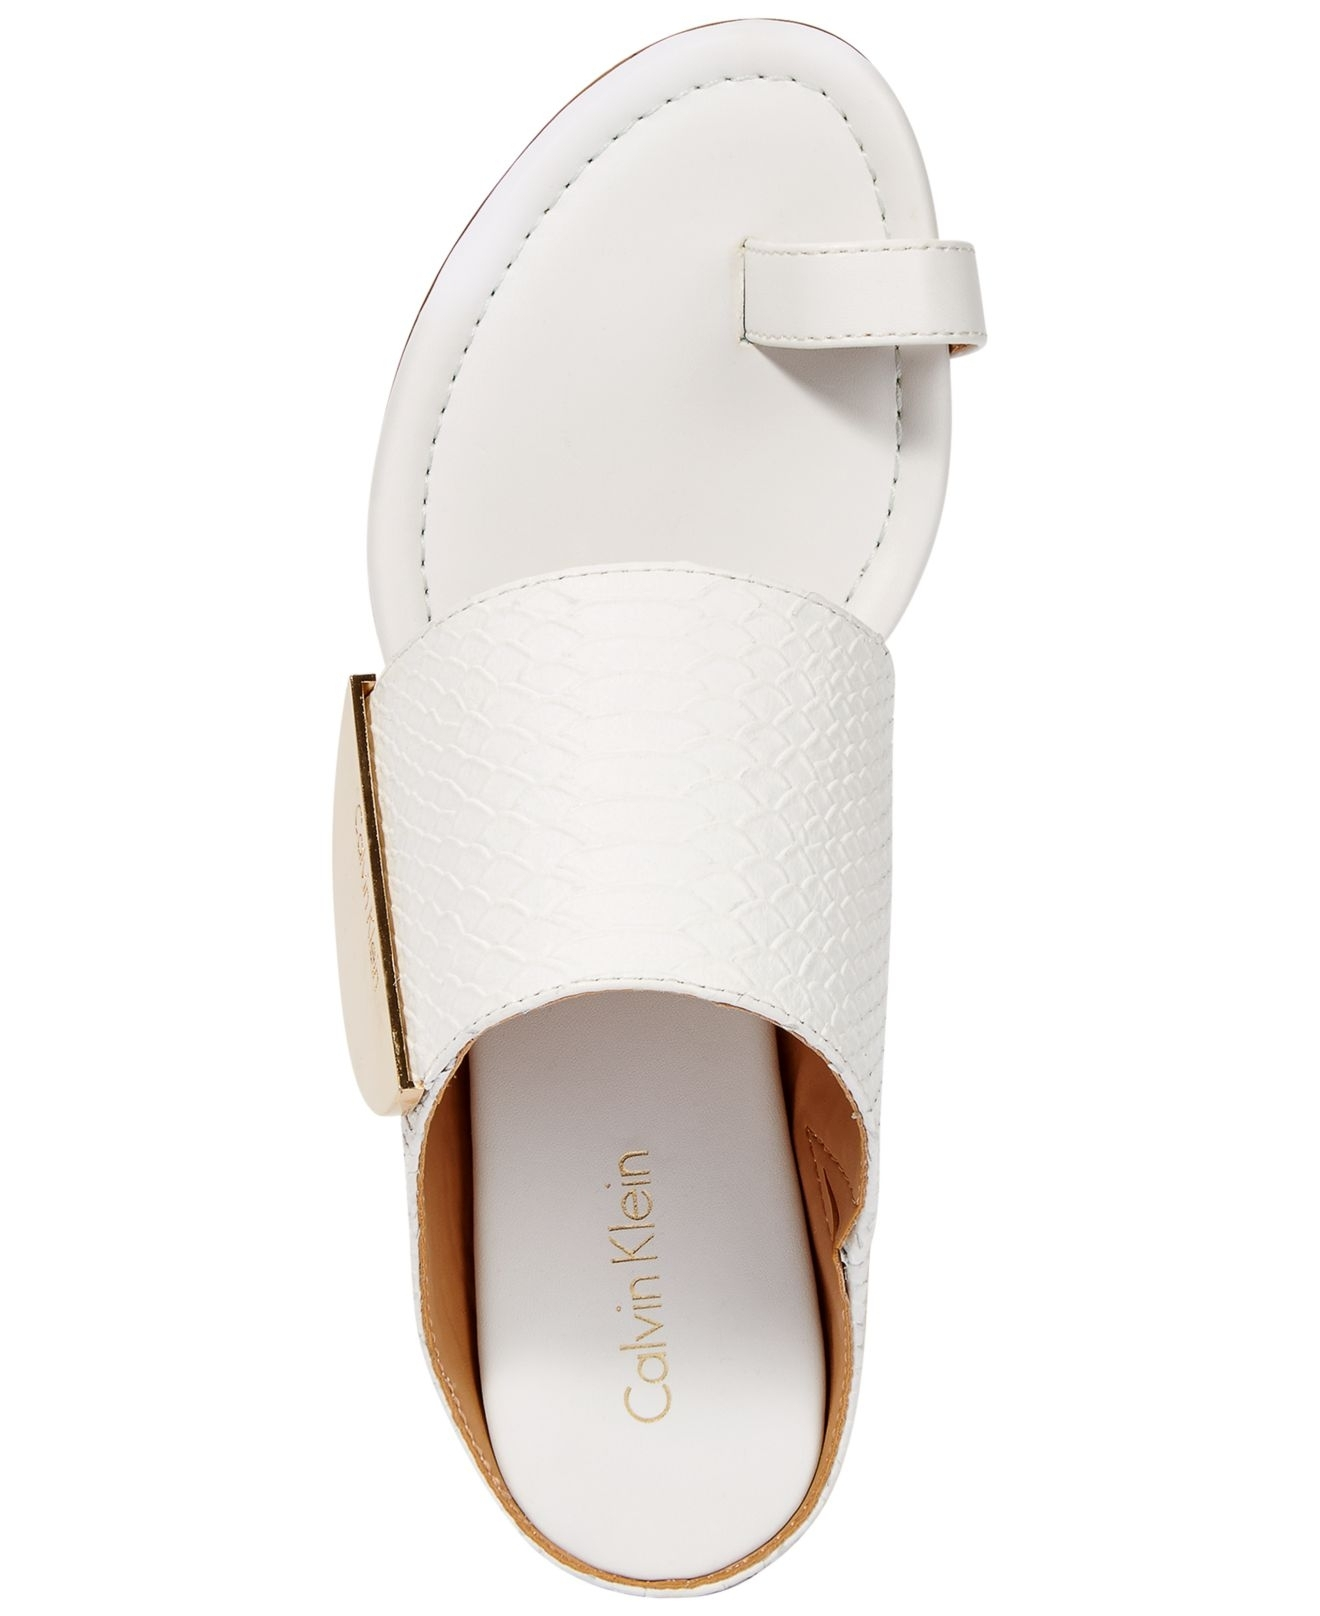 Lyst – Calvin Klein Women's Babel Toe Ring Sandals In White Inside Recent Macy's Toe Rings (View 5 of 15)